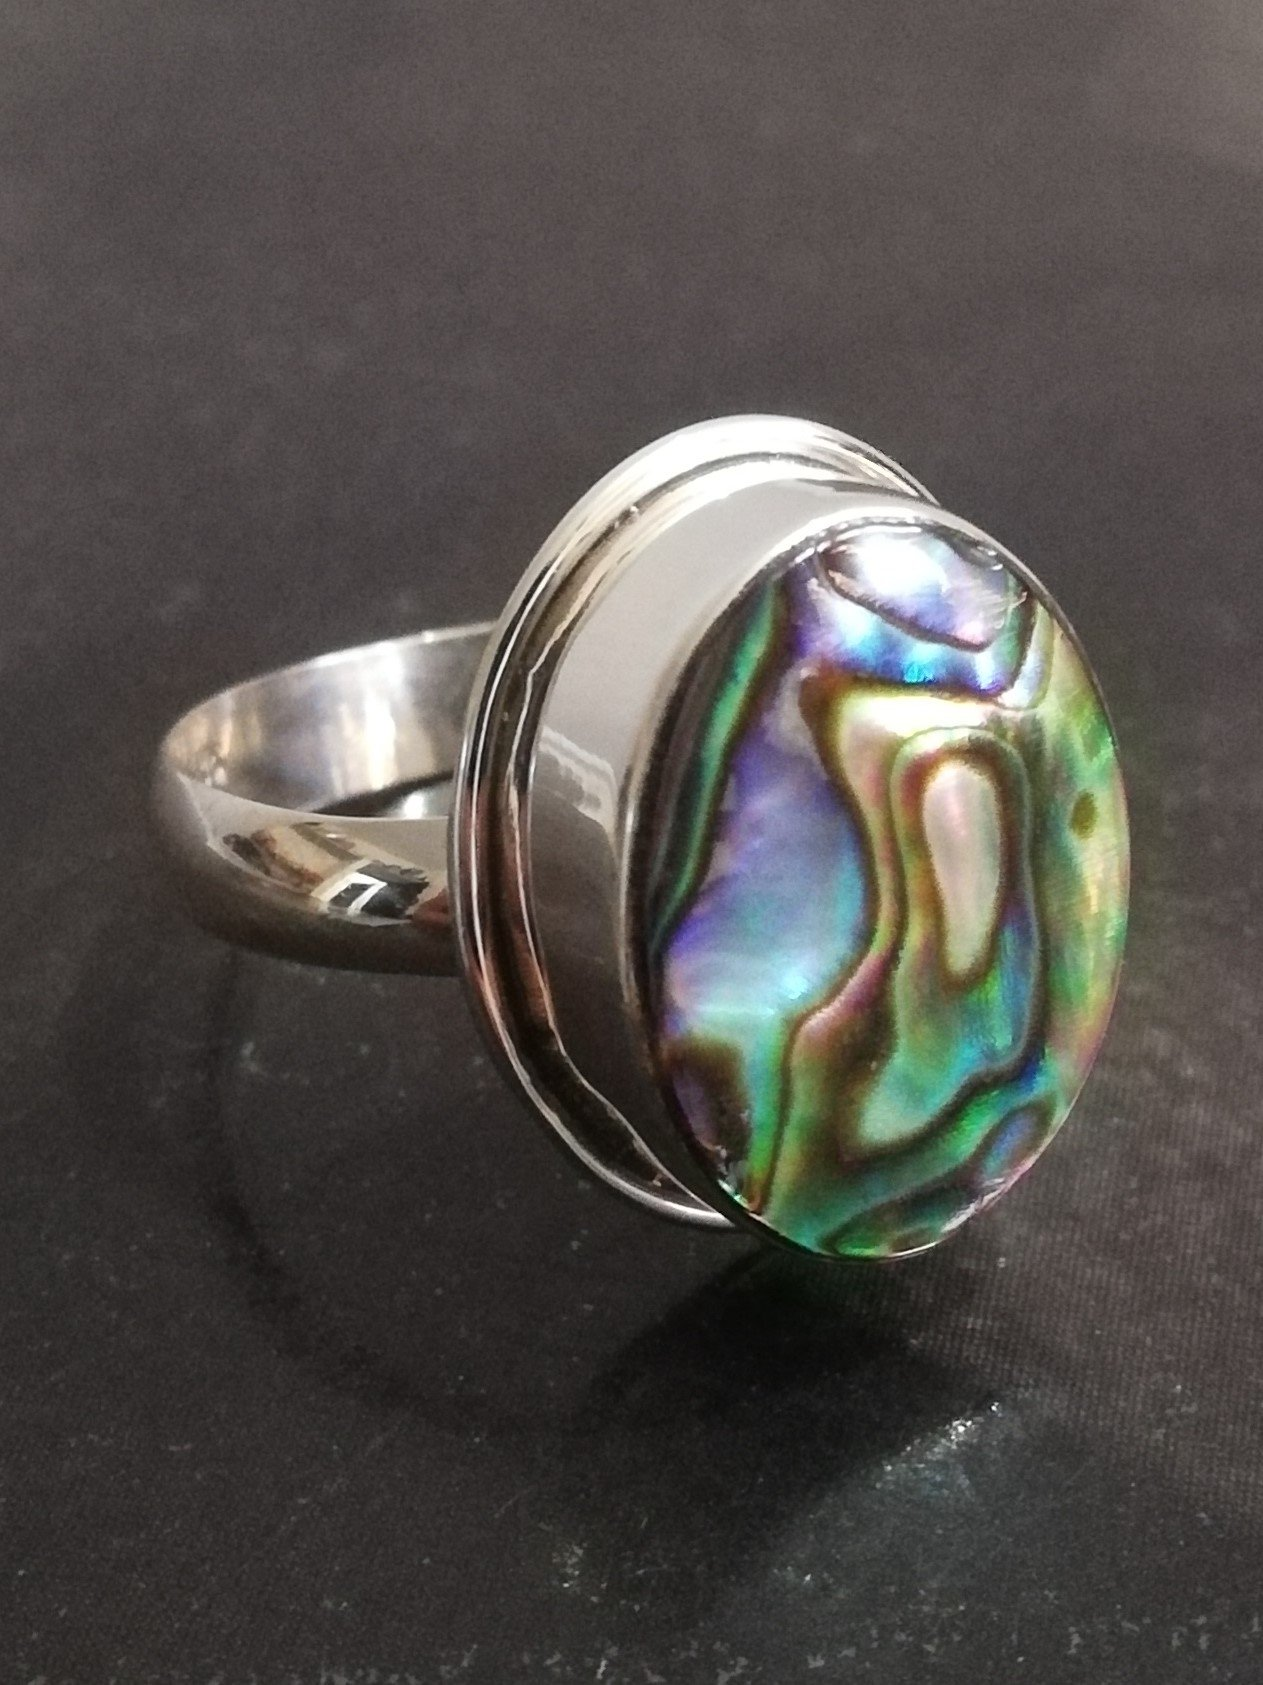 Abalone Shell Ring, 925 Sterling Silver, California Abalone Shell Ring, Sea Stone Ring, Paua Shell Ring, Ocean Jewelry, Petite Ring, Colorful Ring, Promise Ring, Healing Ring, Boho Ring, US All Size